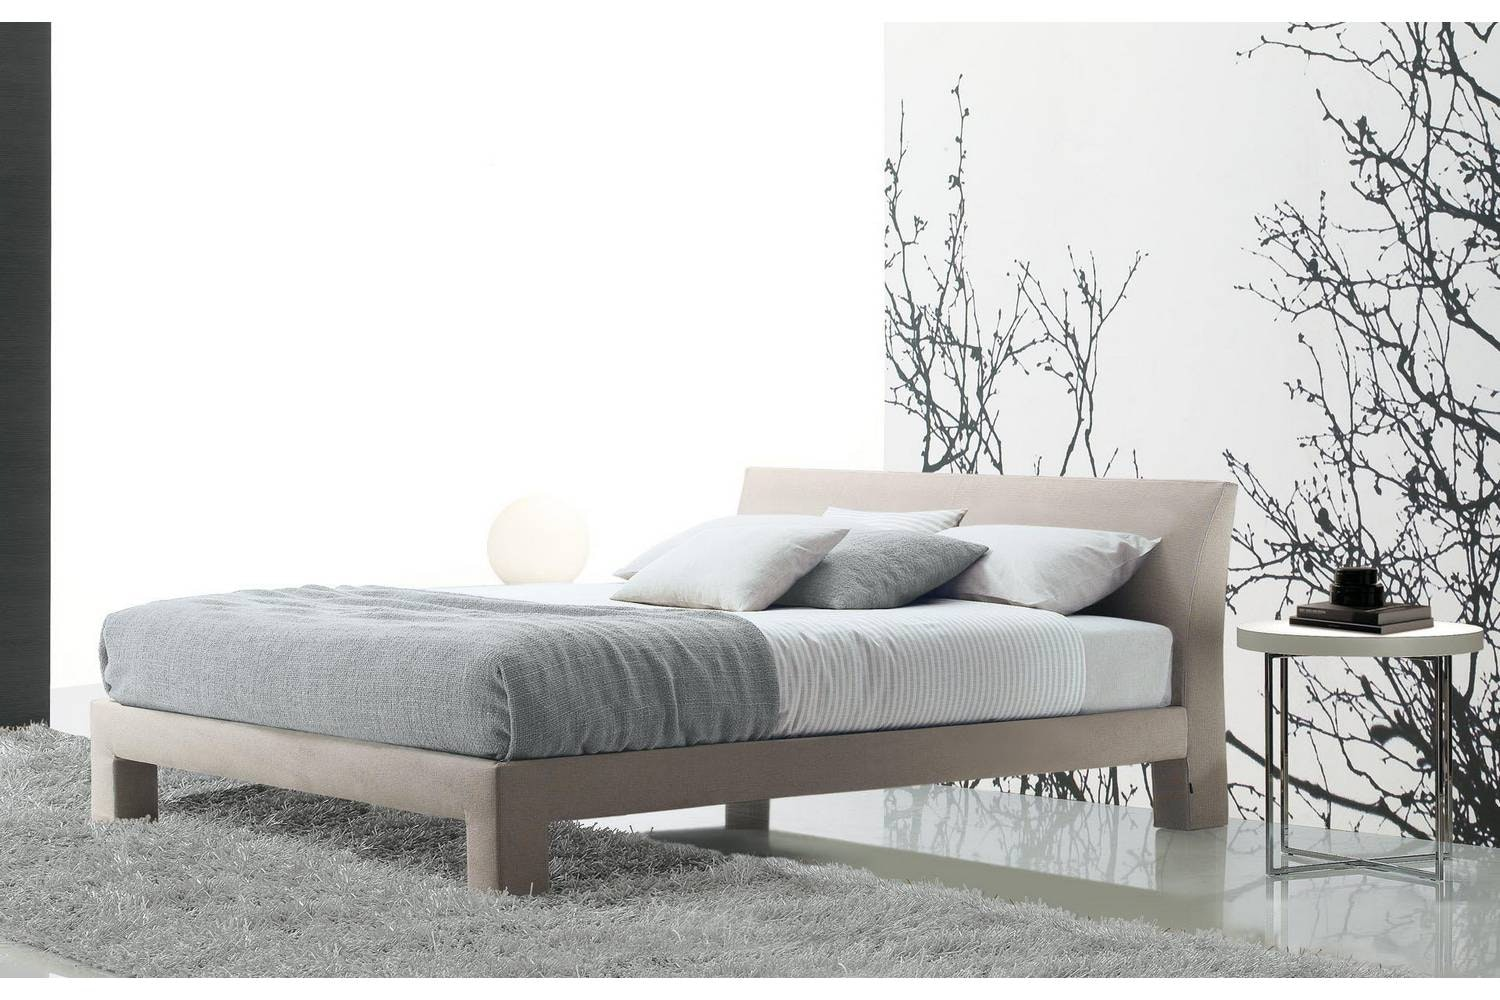 Teo Bed by Paolo Piva for Poliform